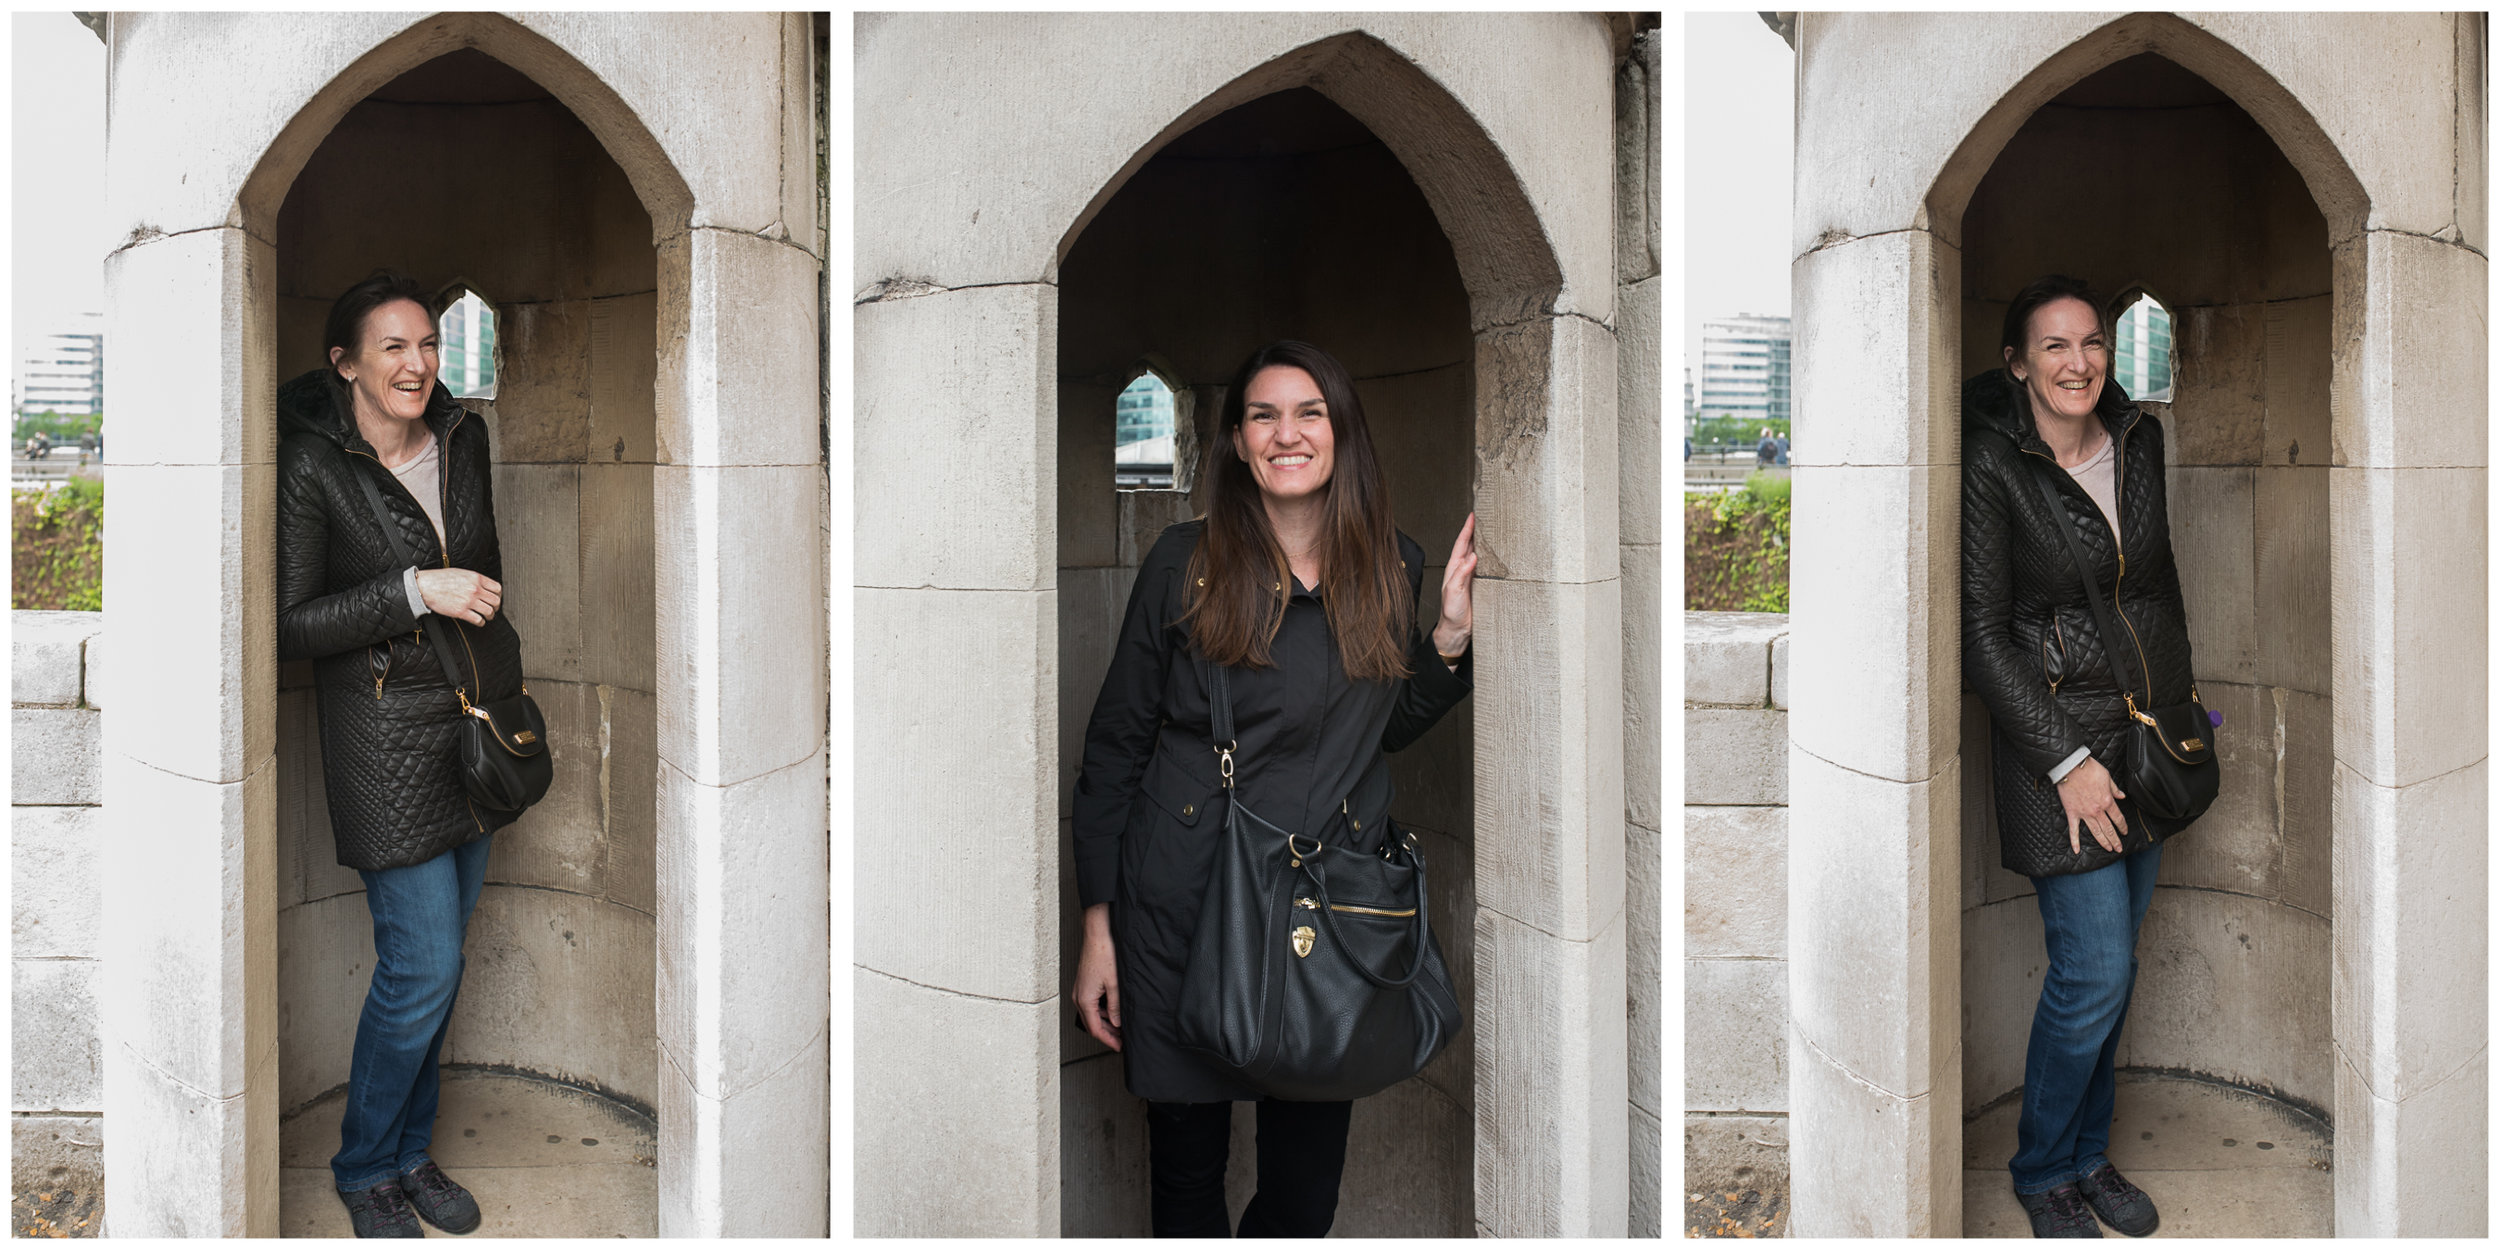 We were the very first people to ever think of taking this photo at  The Tower of London .